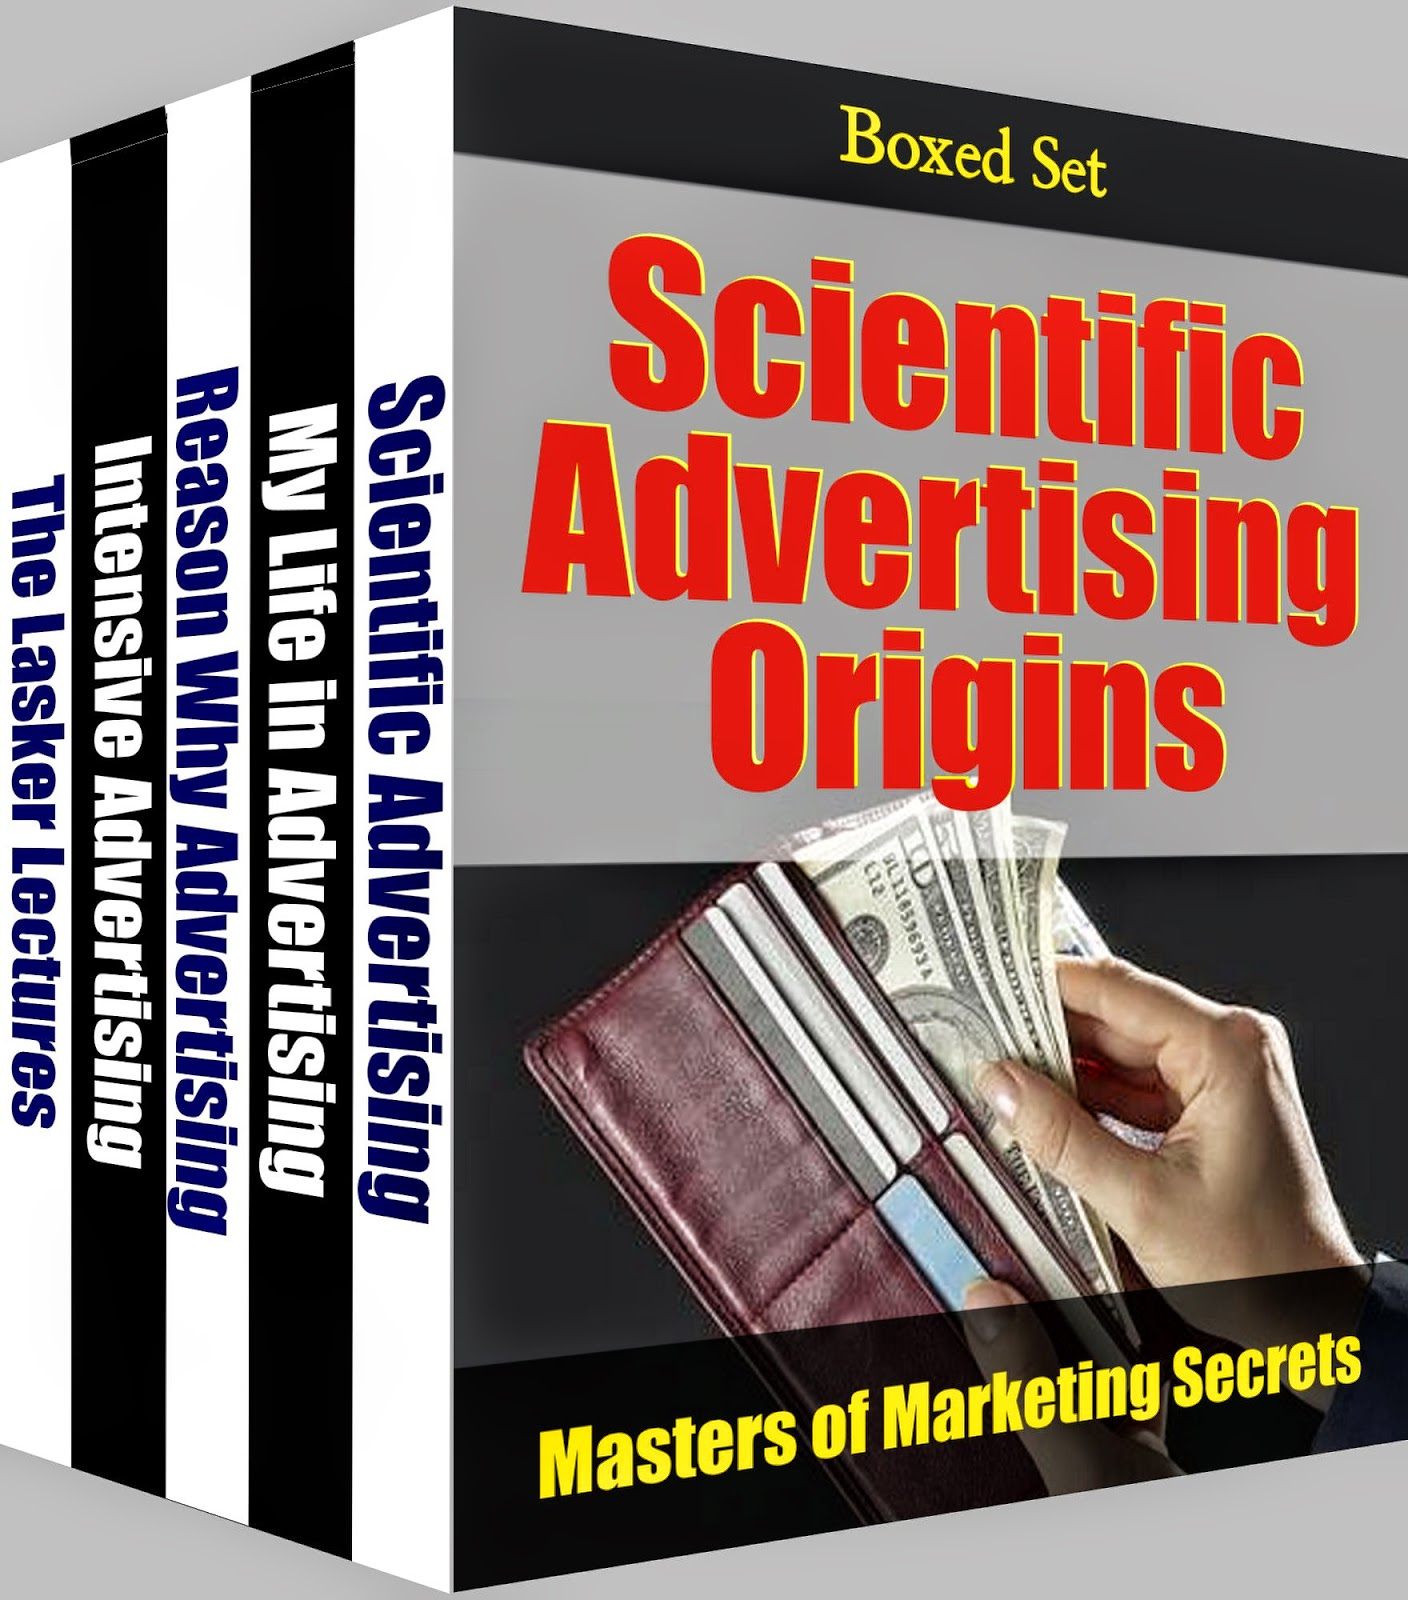 Scientific Advertising Origins - Where and How Modern Marketing Started